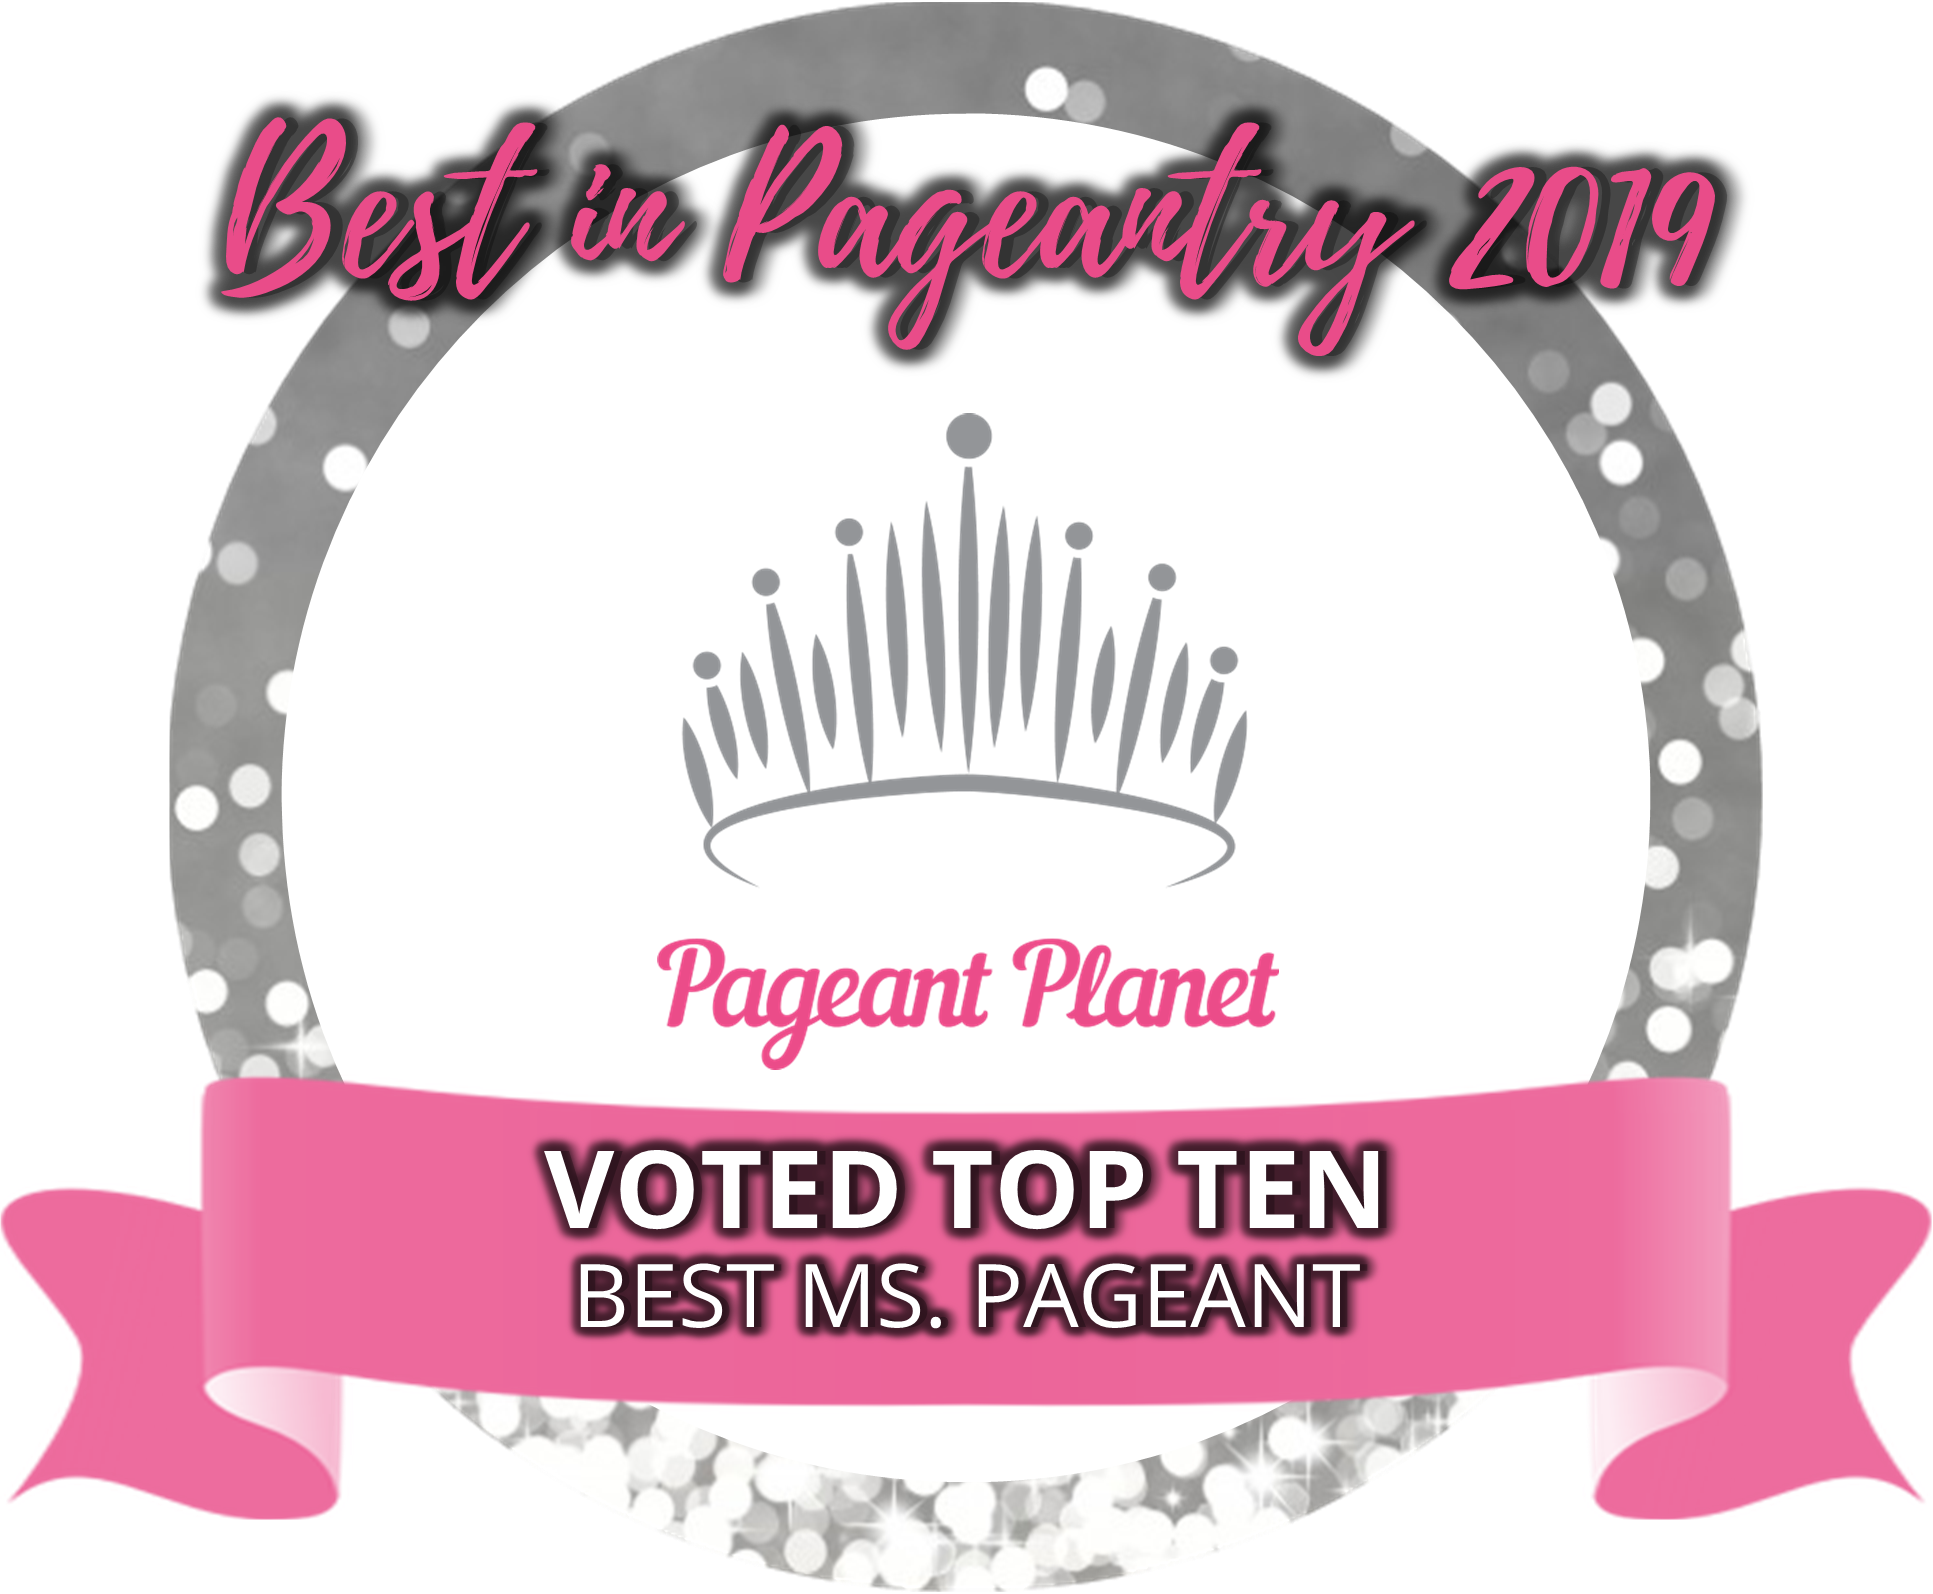 Top 10 Ms. Pageants of 2019